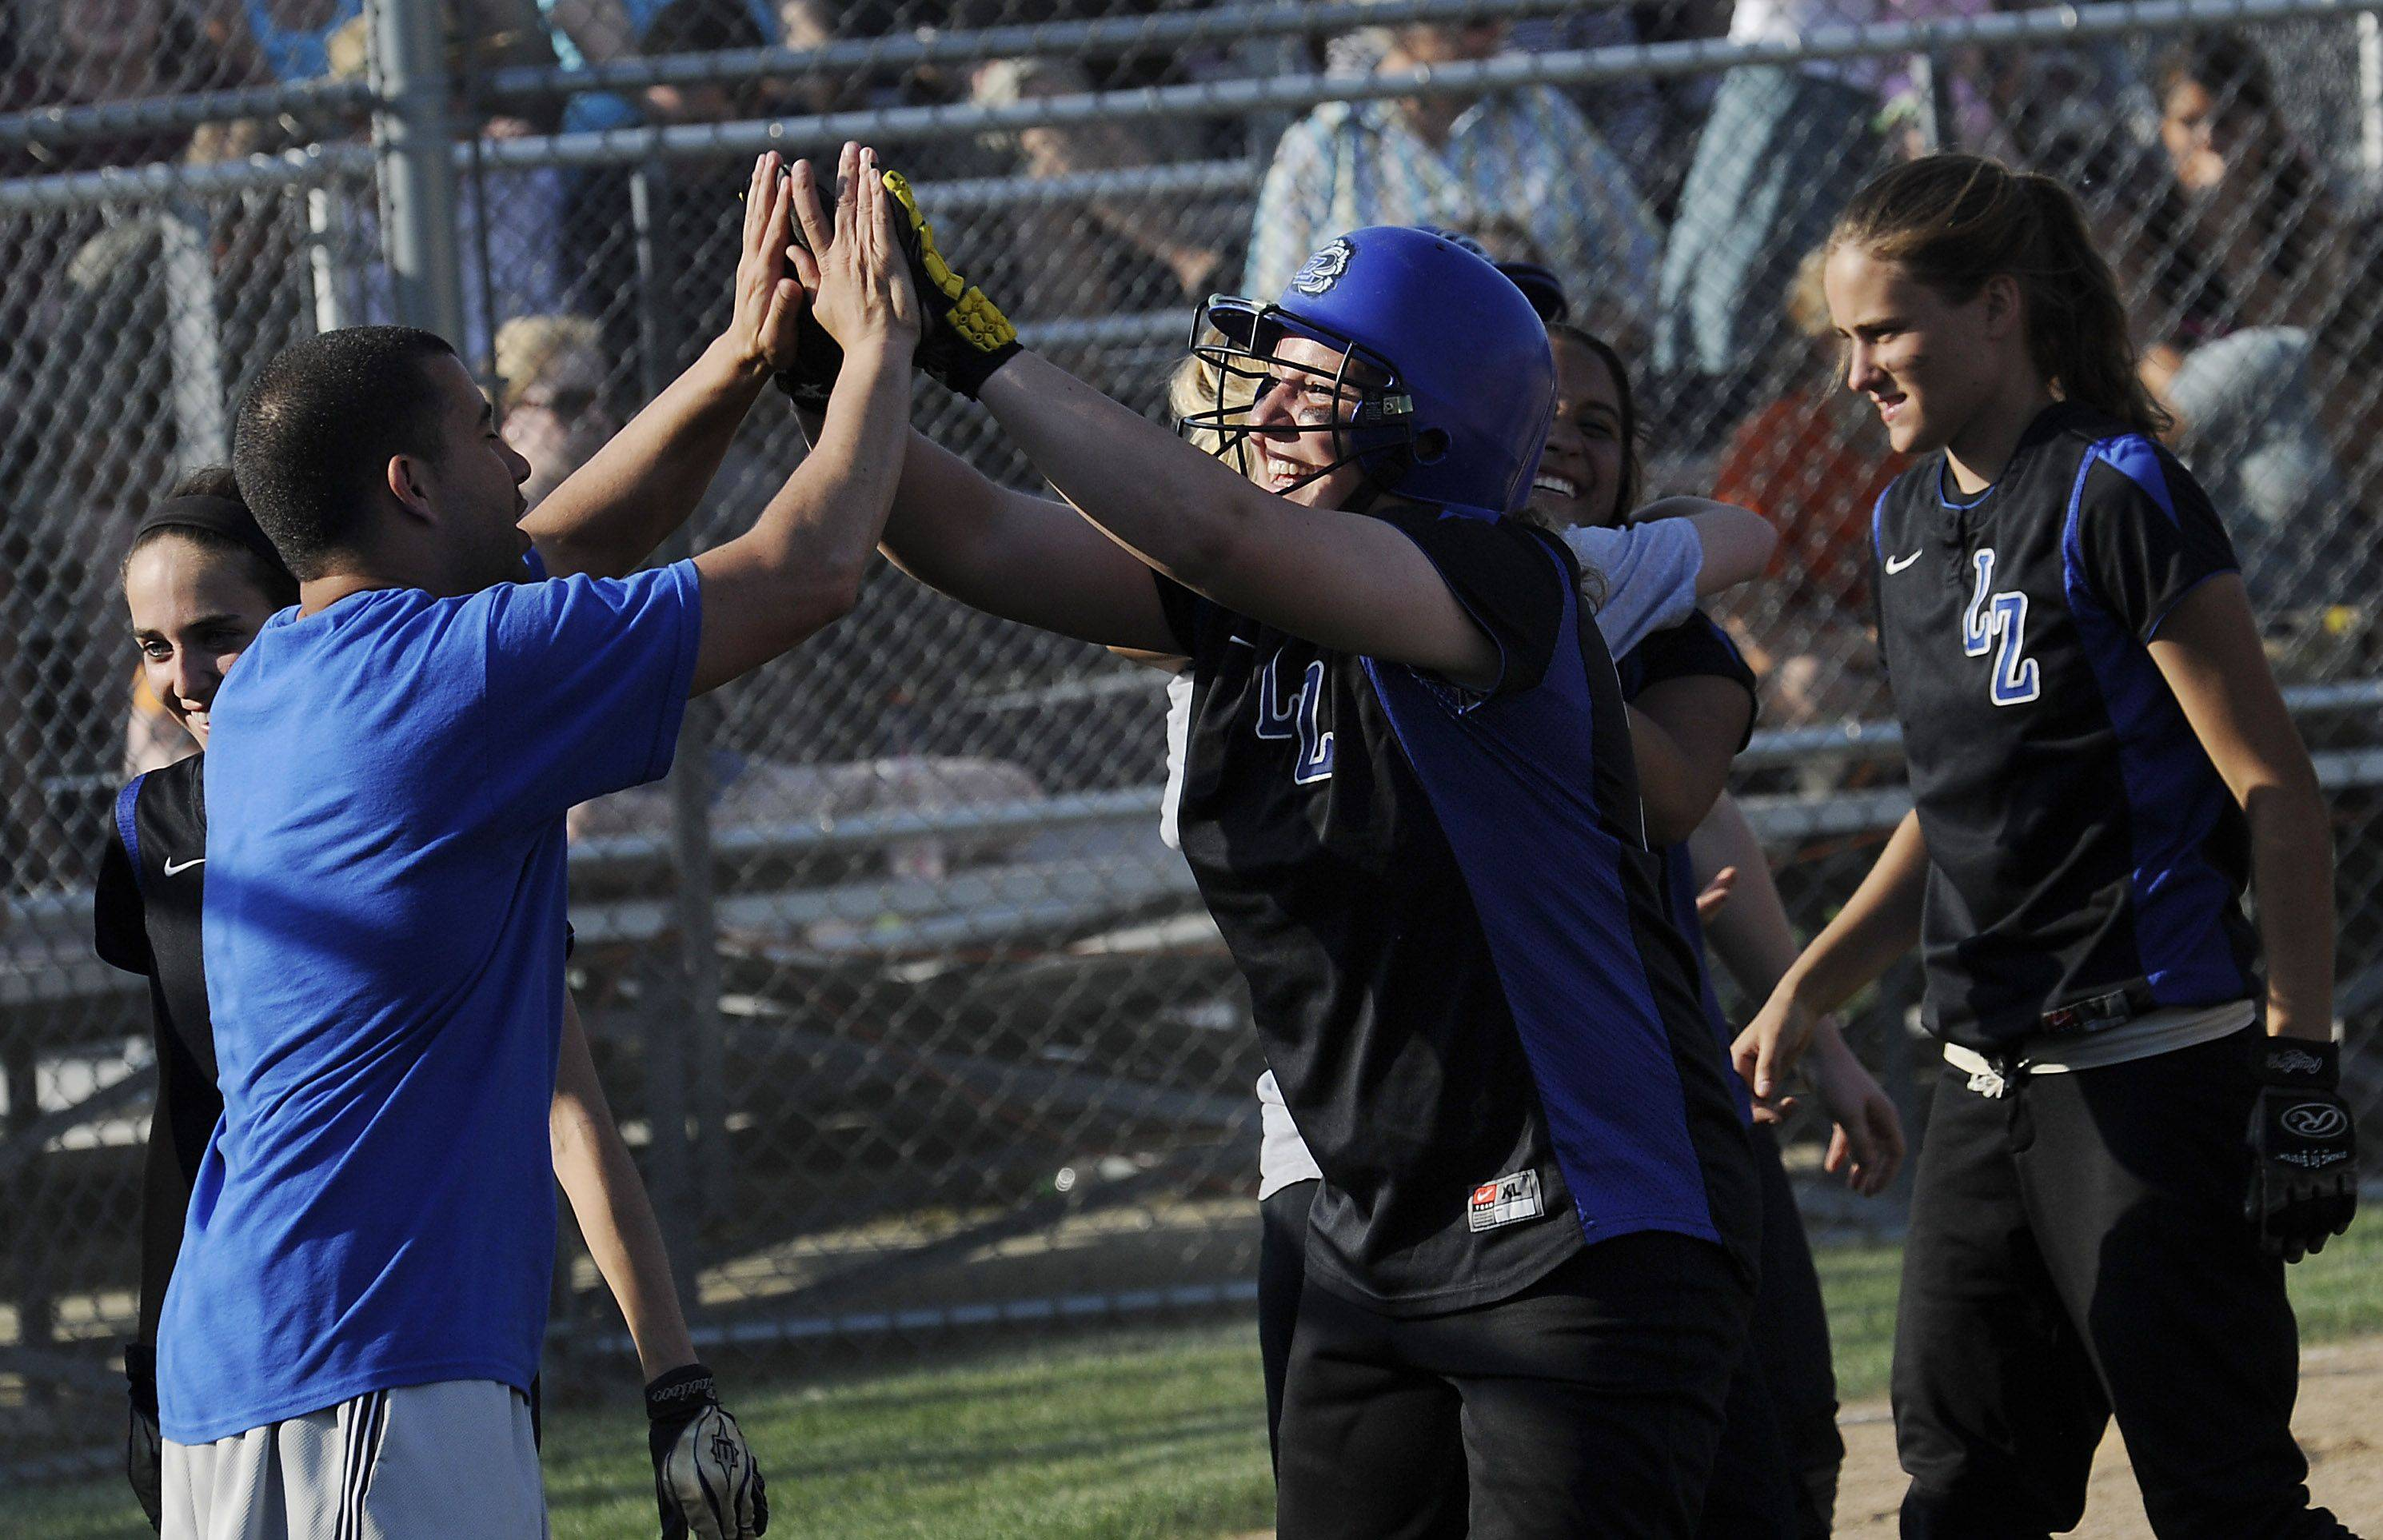 Lake Zurich's pitcher Megan Mattera hits a solo homer in the sixth inning that brought many Bears fans smiles and a 2-0 lead over New Trier in the Class 4A Glenbrook South softball supersectional title game on Monday.